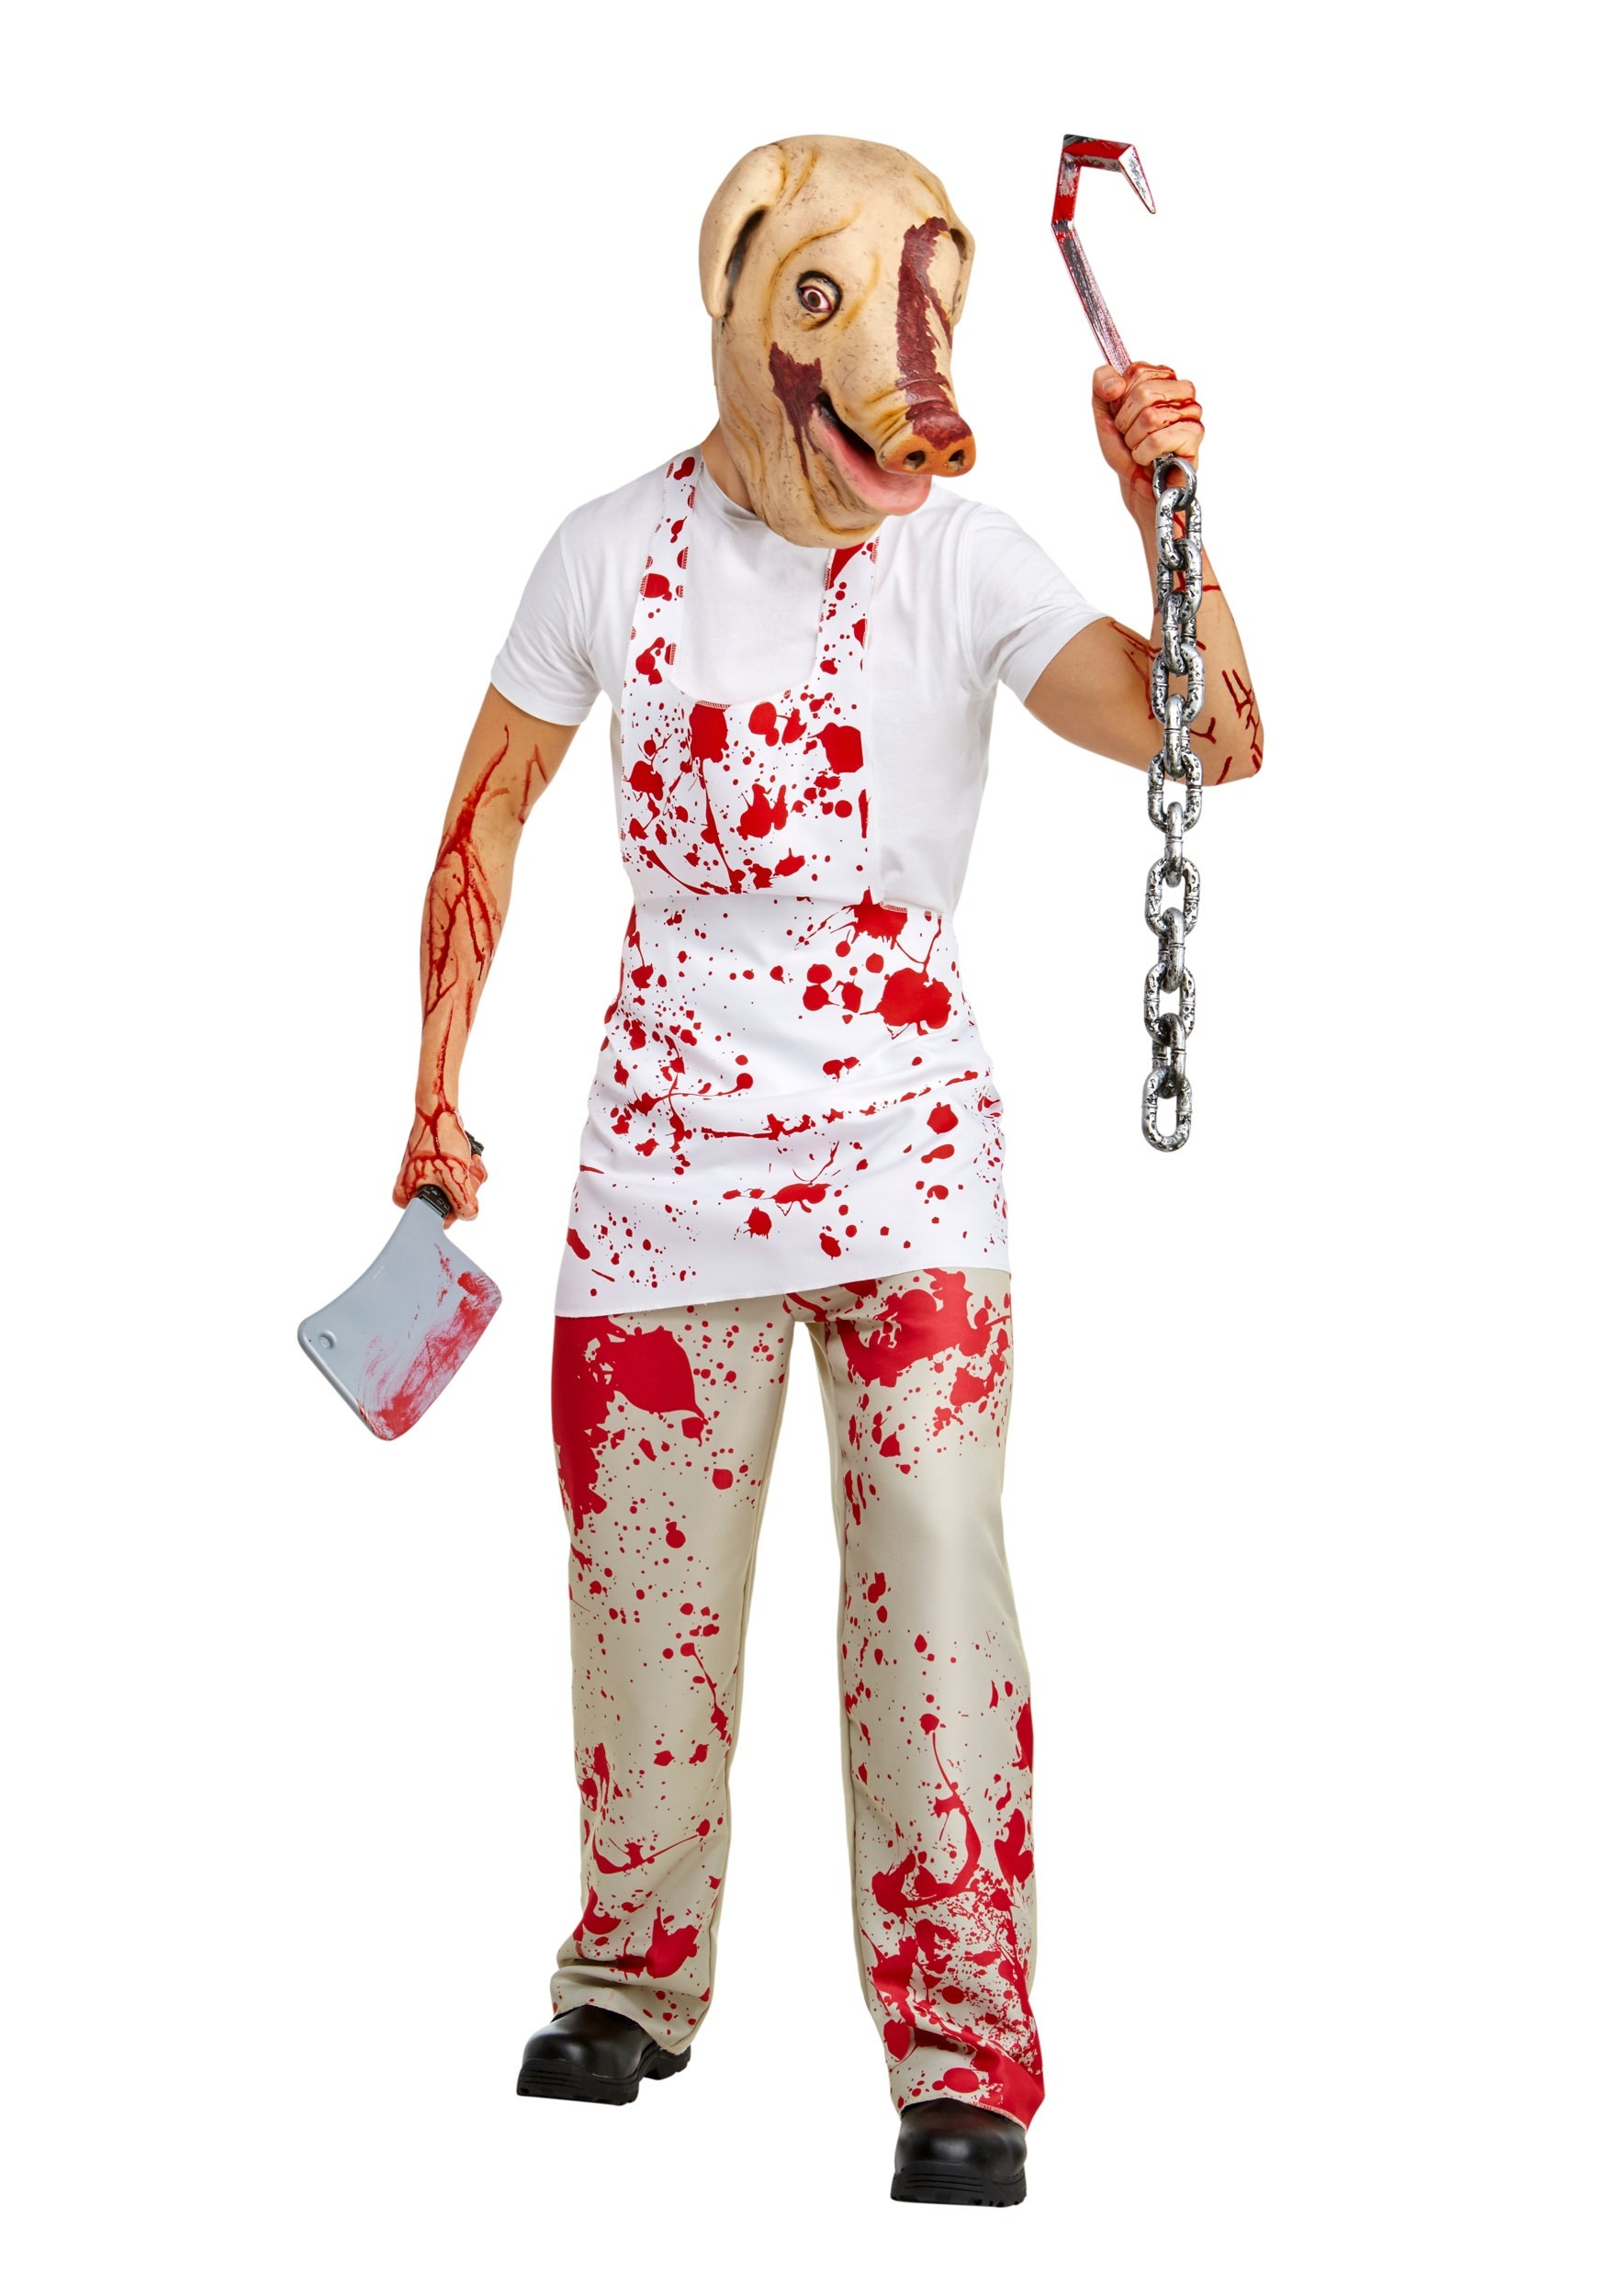 Adult Piggy Man Fancy Dress Costume from American Horror Story